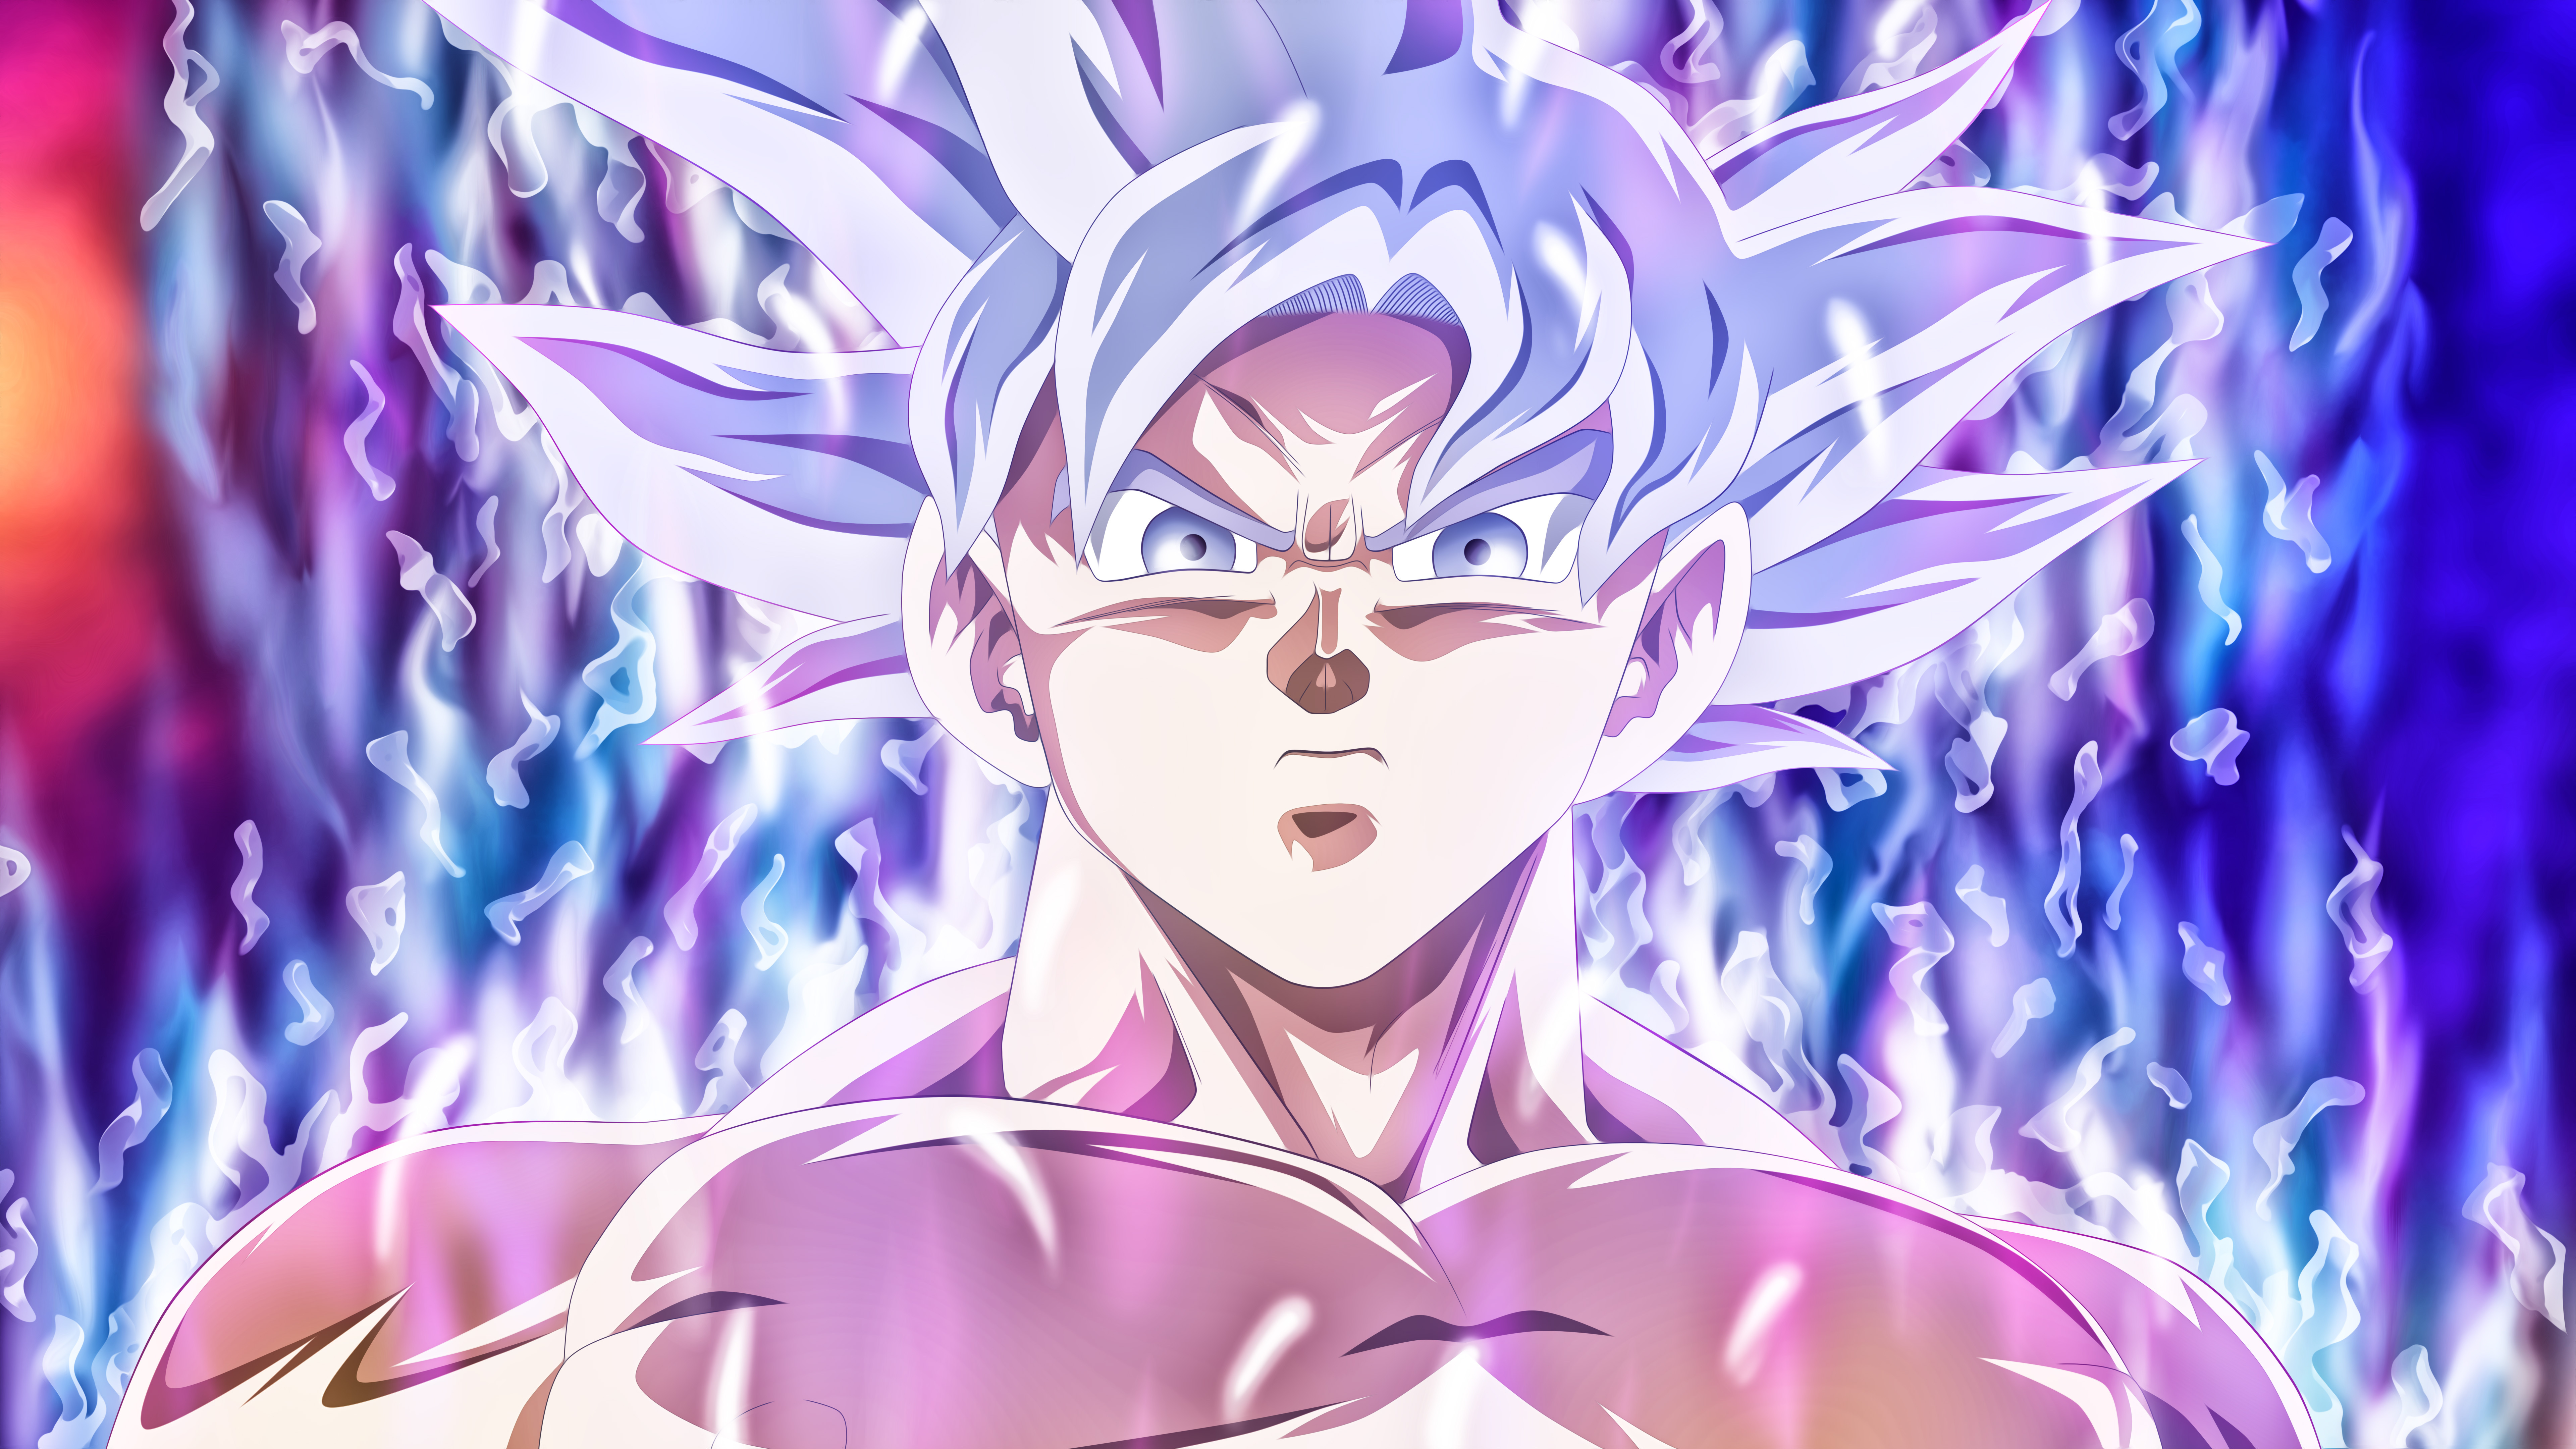 7680x4320 Goku Mastered Ultra Instinct 8k Hd 4k Wallpapers Images